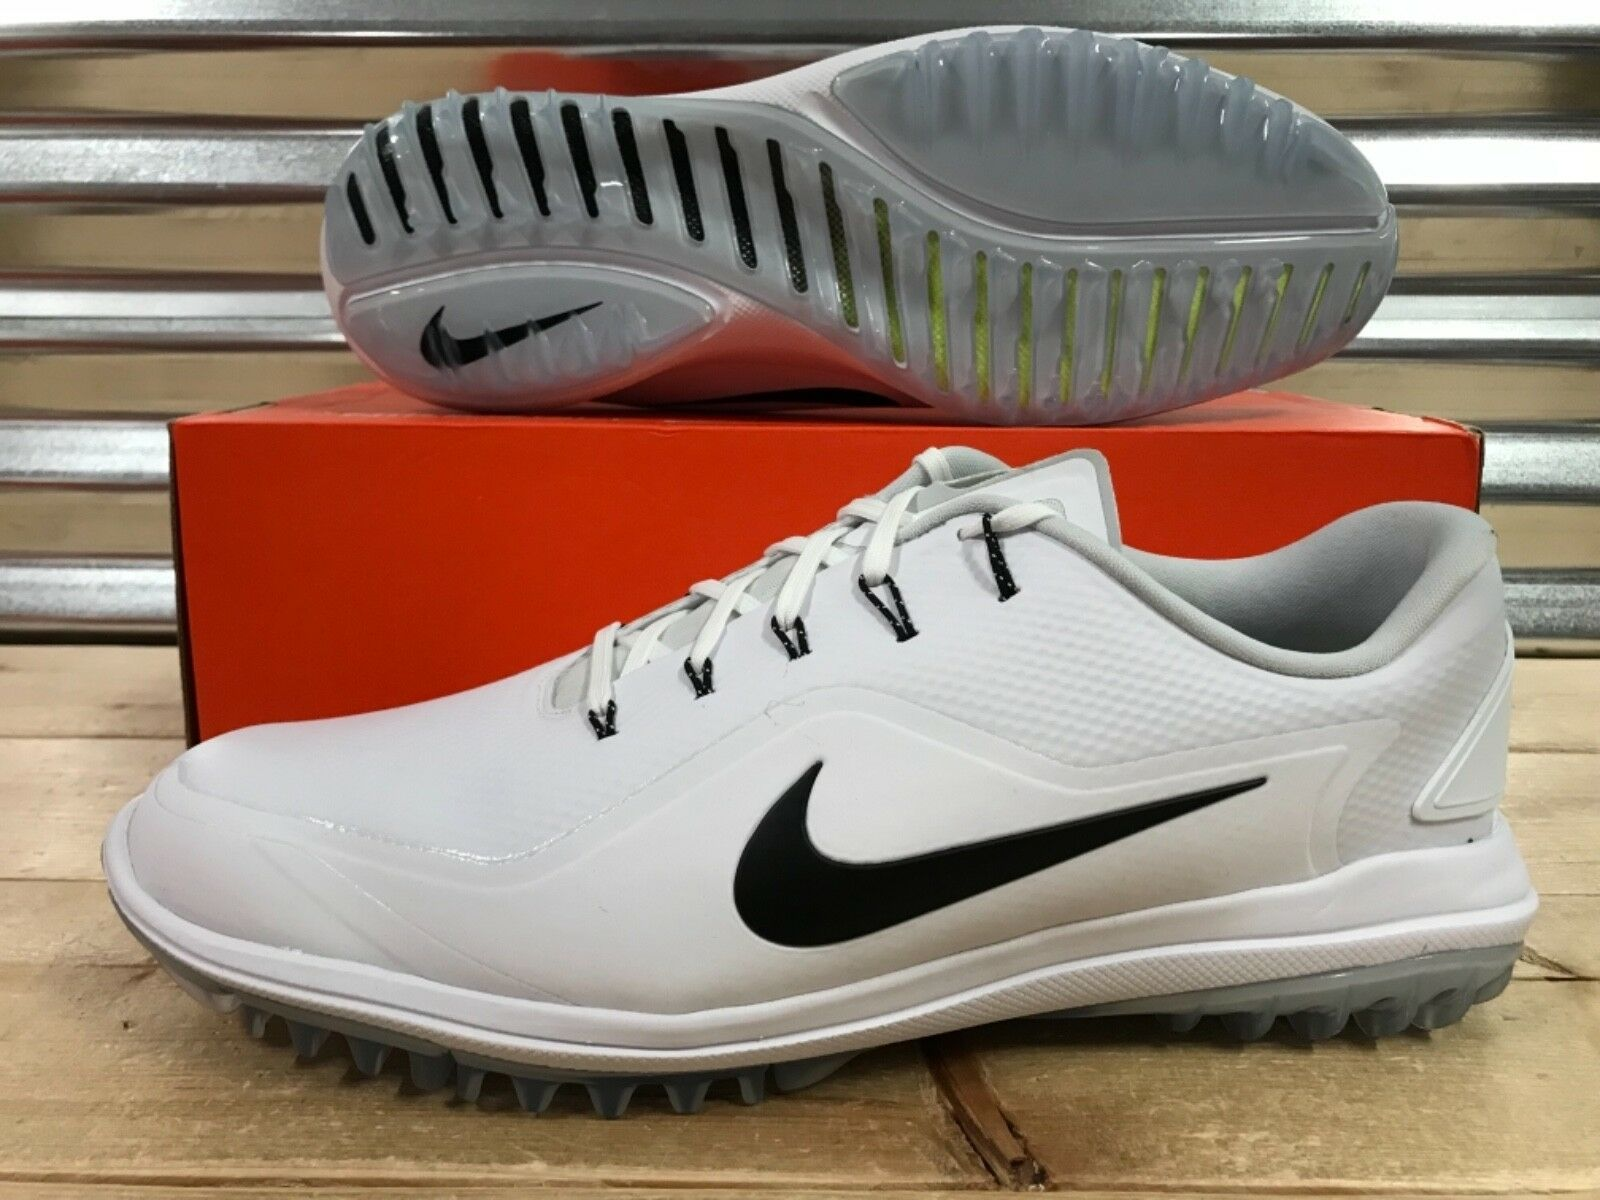 Nike Lunar Control Vapor 2 Golf SZ Shoes White Black Rory SZ Golf 14 ( 899633-100 ) 32dc09